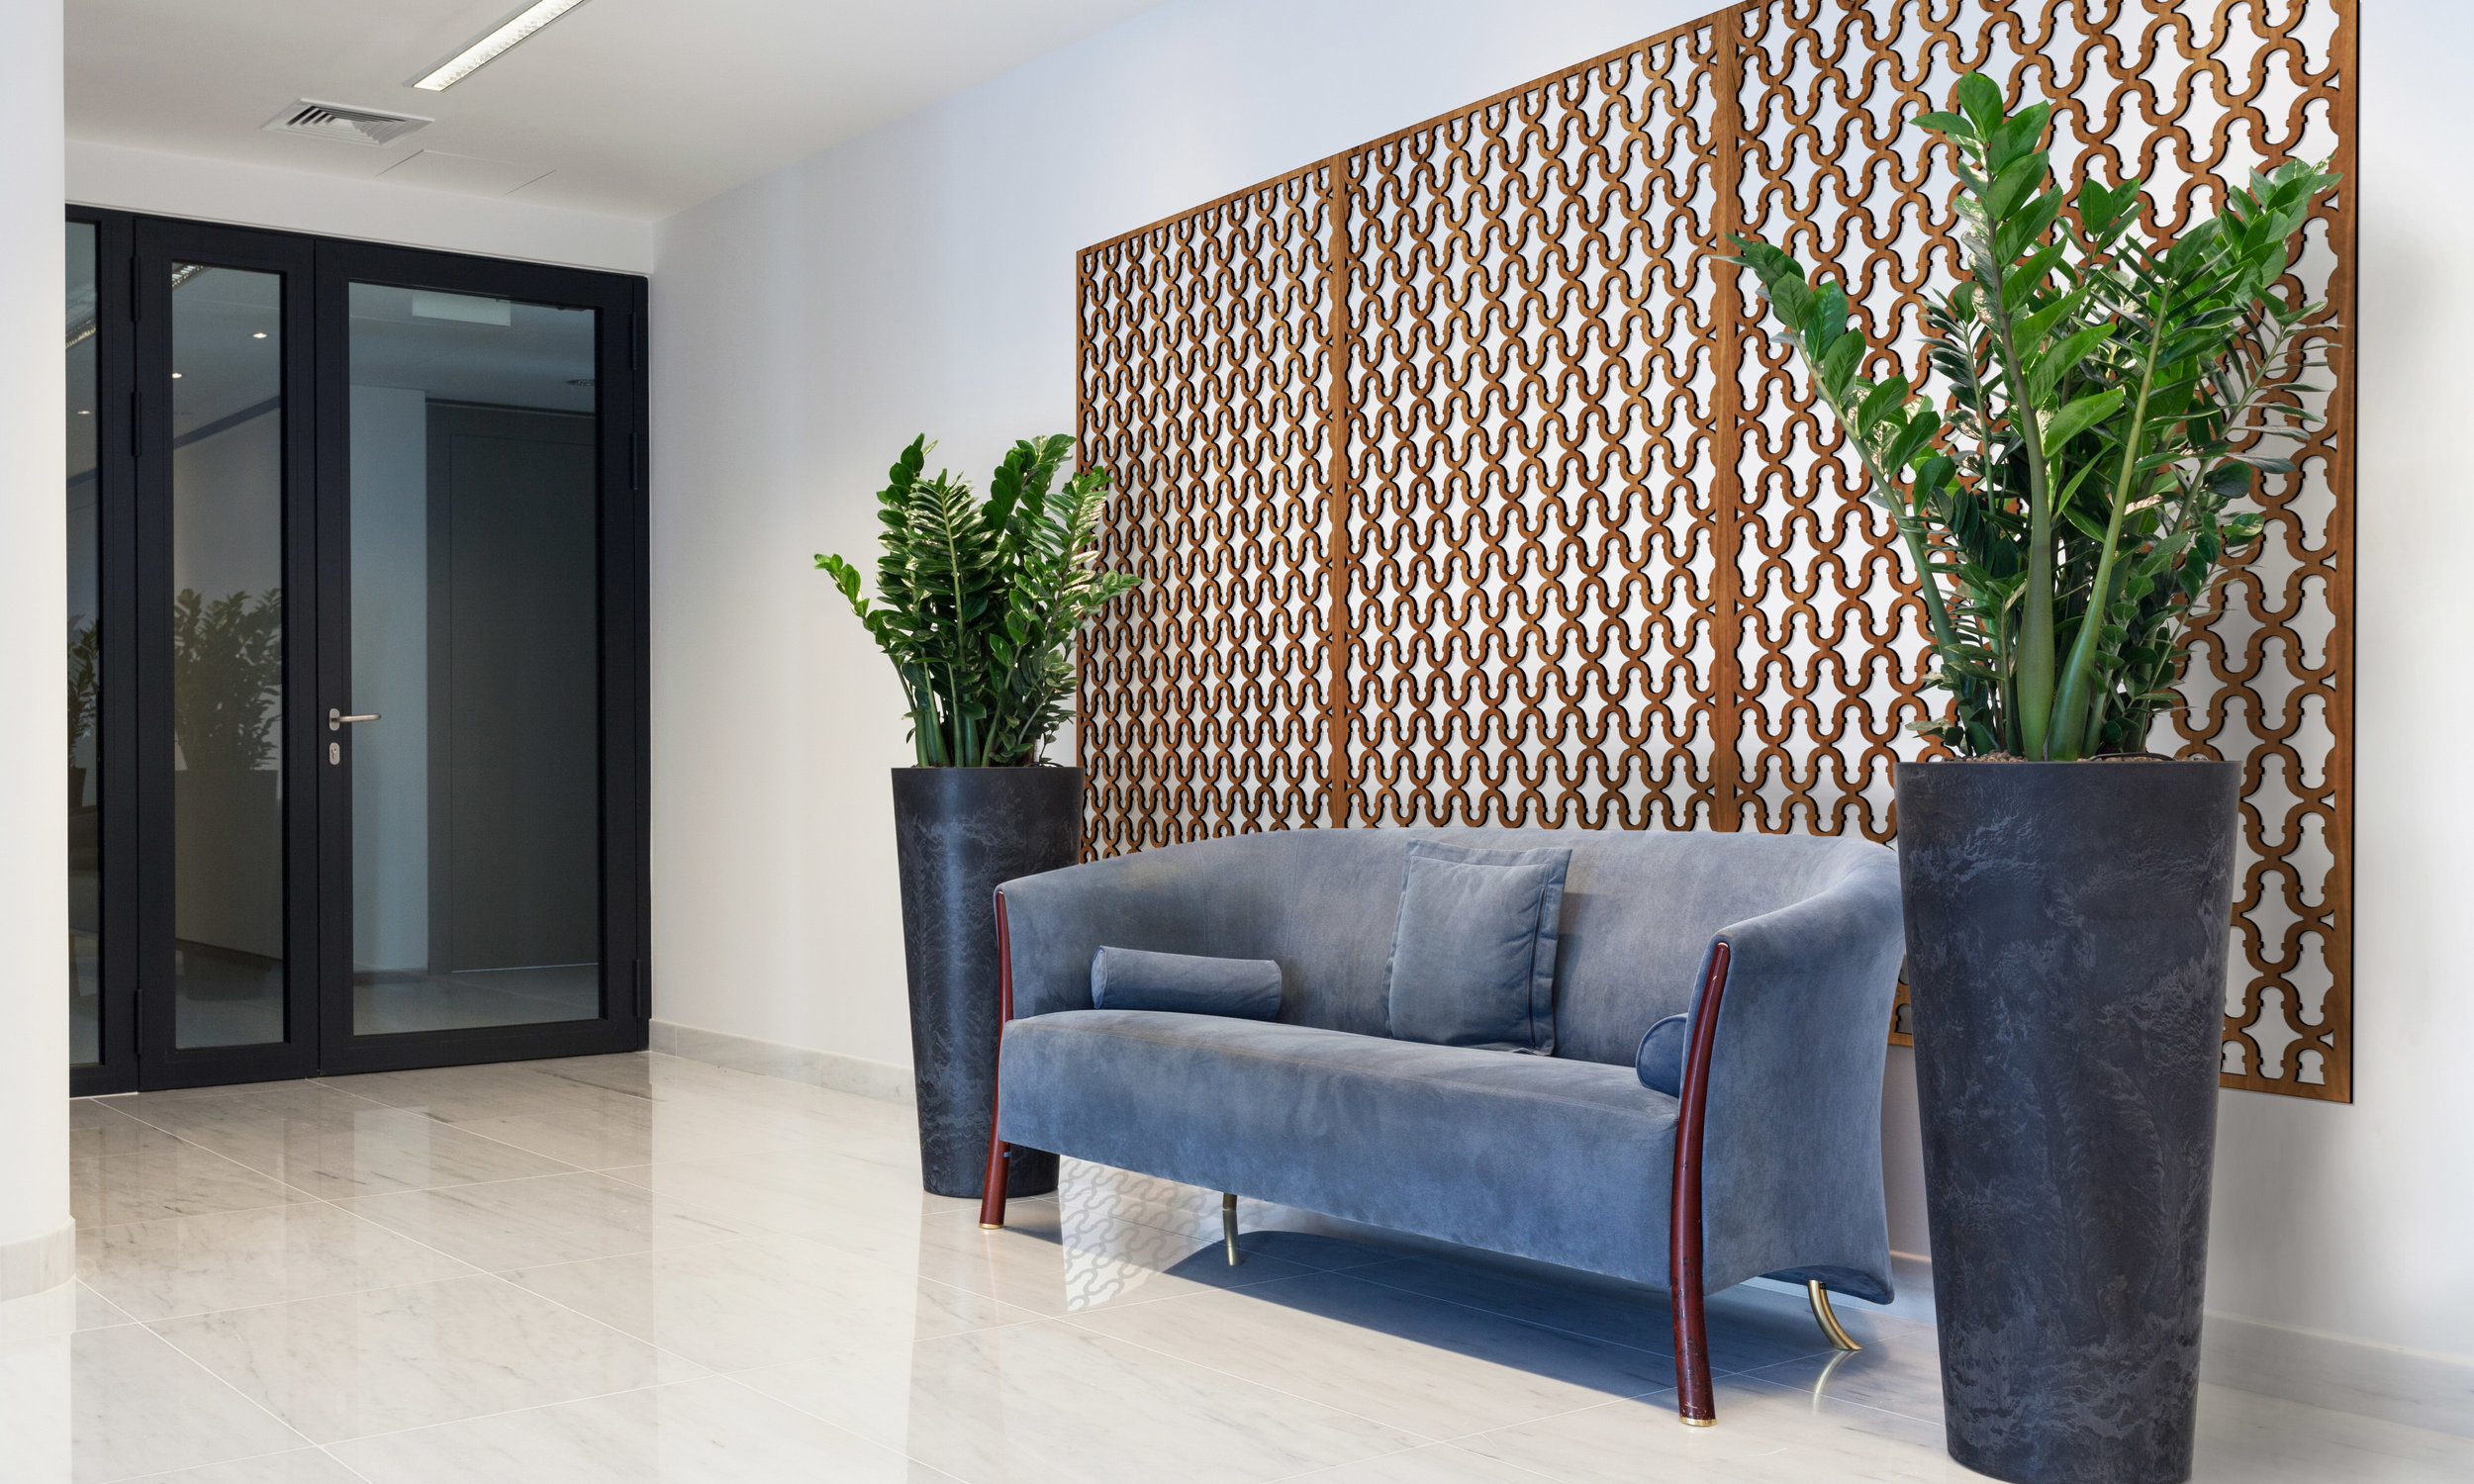 Installation Rendering A   Double Horseshoe decorative office wall panel - shown in Cherry